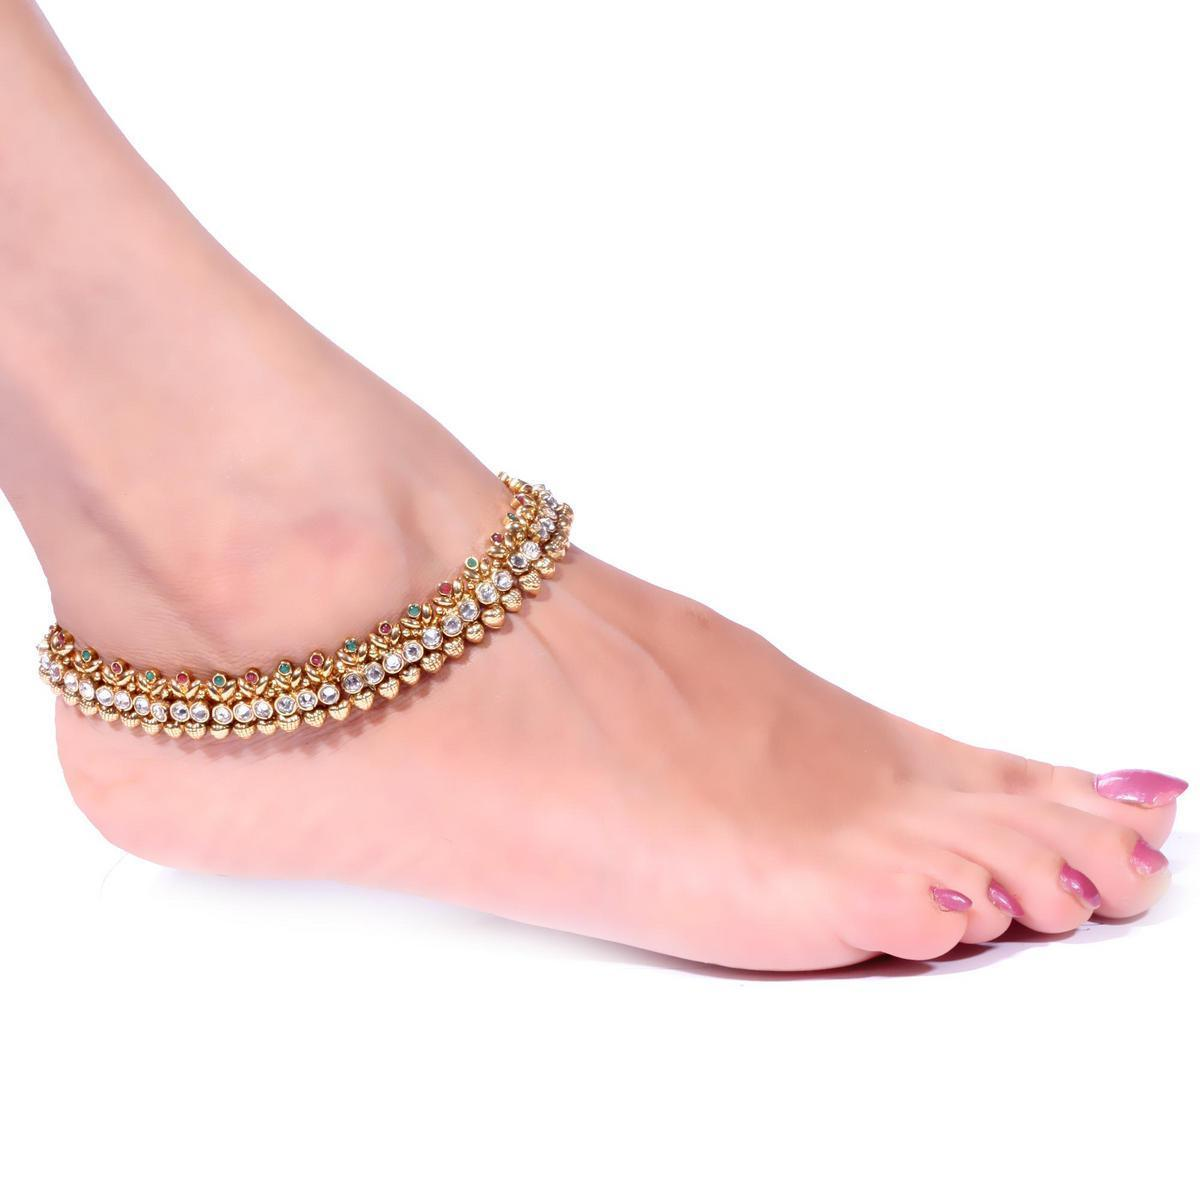 ANKLETS THE QUEEN